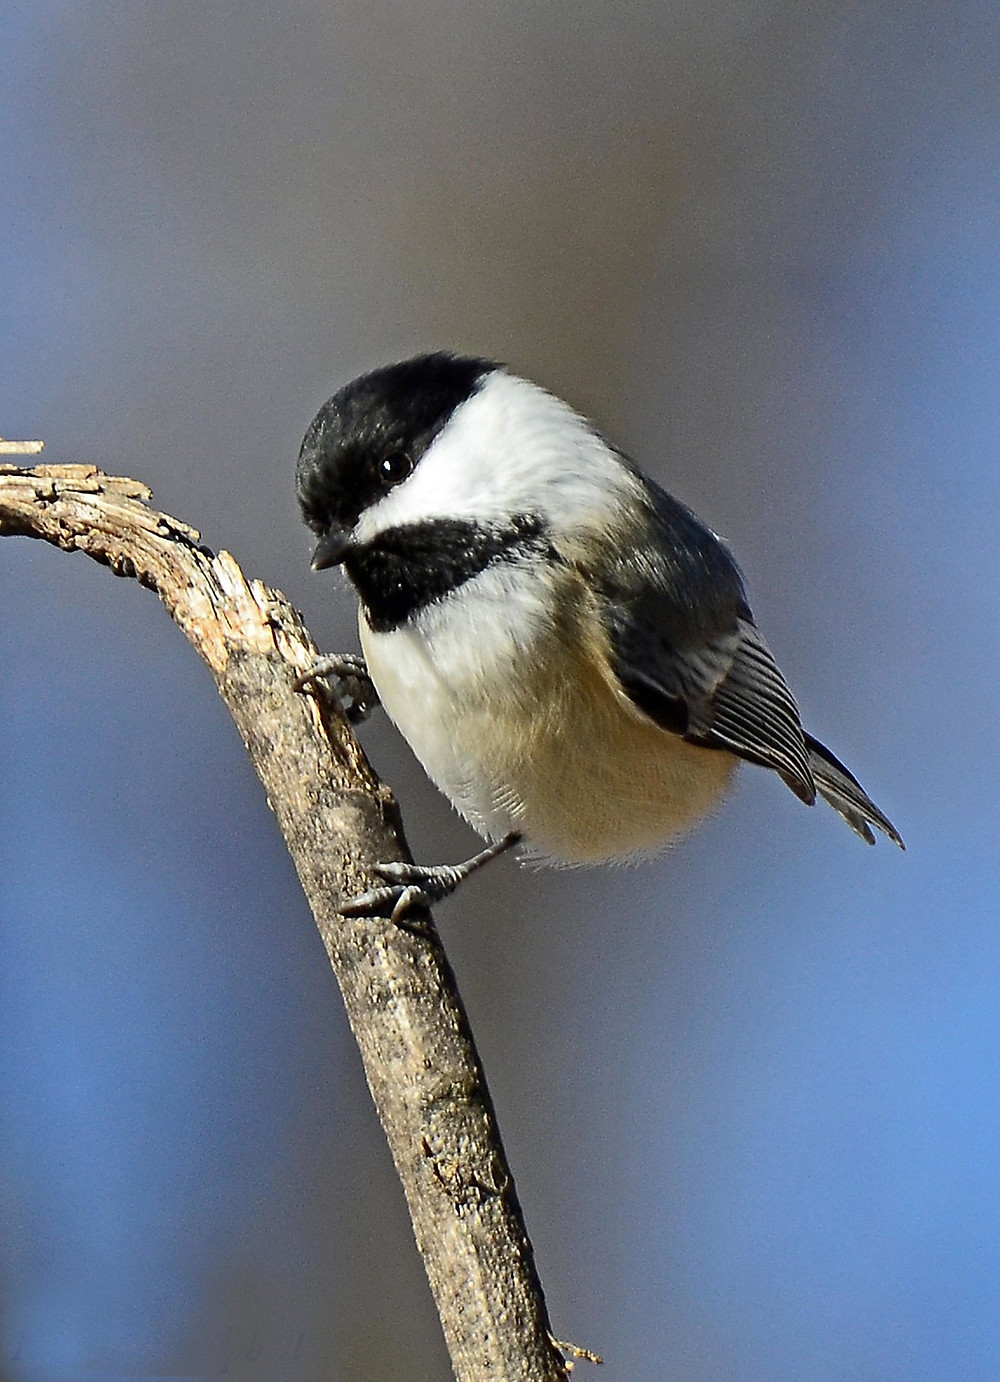 Black capped chickadee on a branch